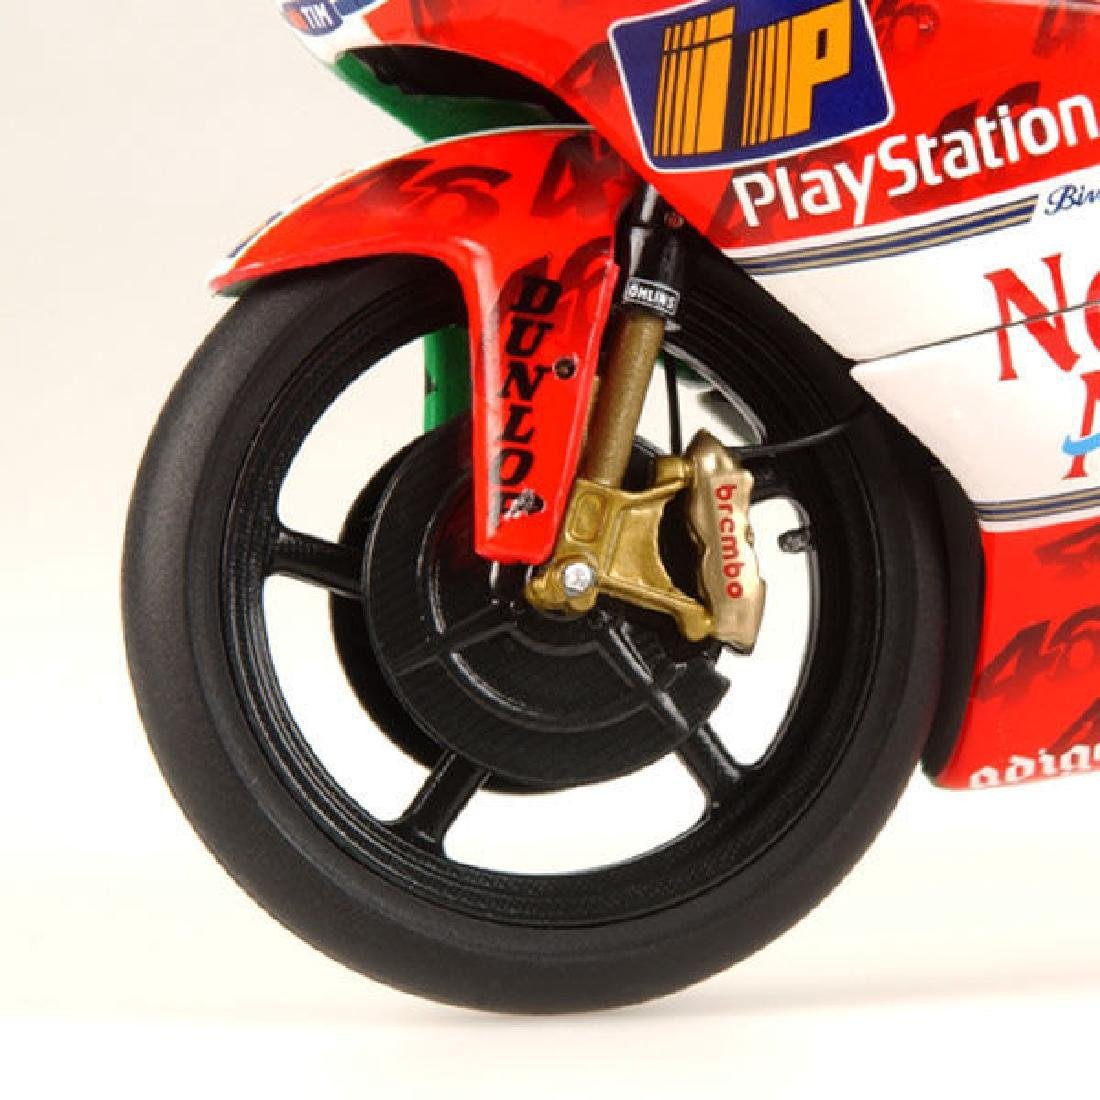 Minichamps Scale 1:12 Aprilia Team Aprilia Grand Prix - 6